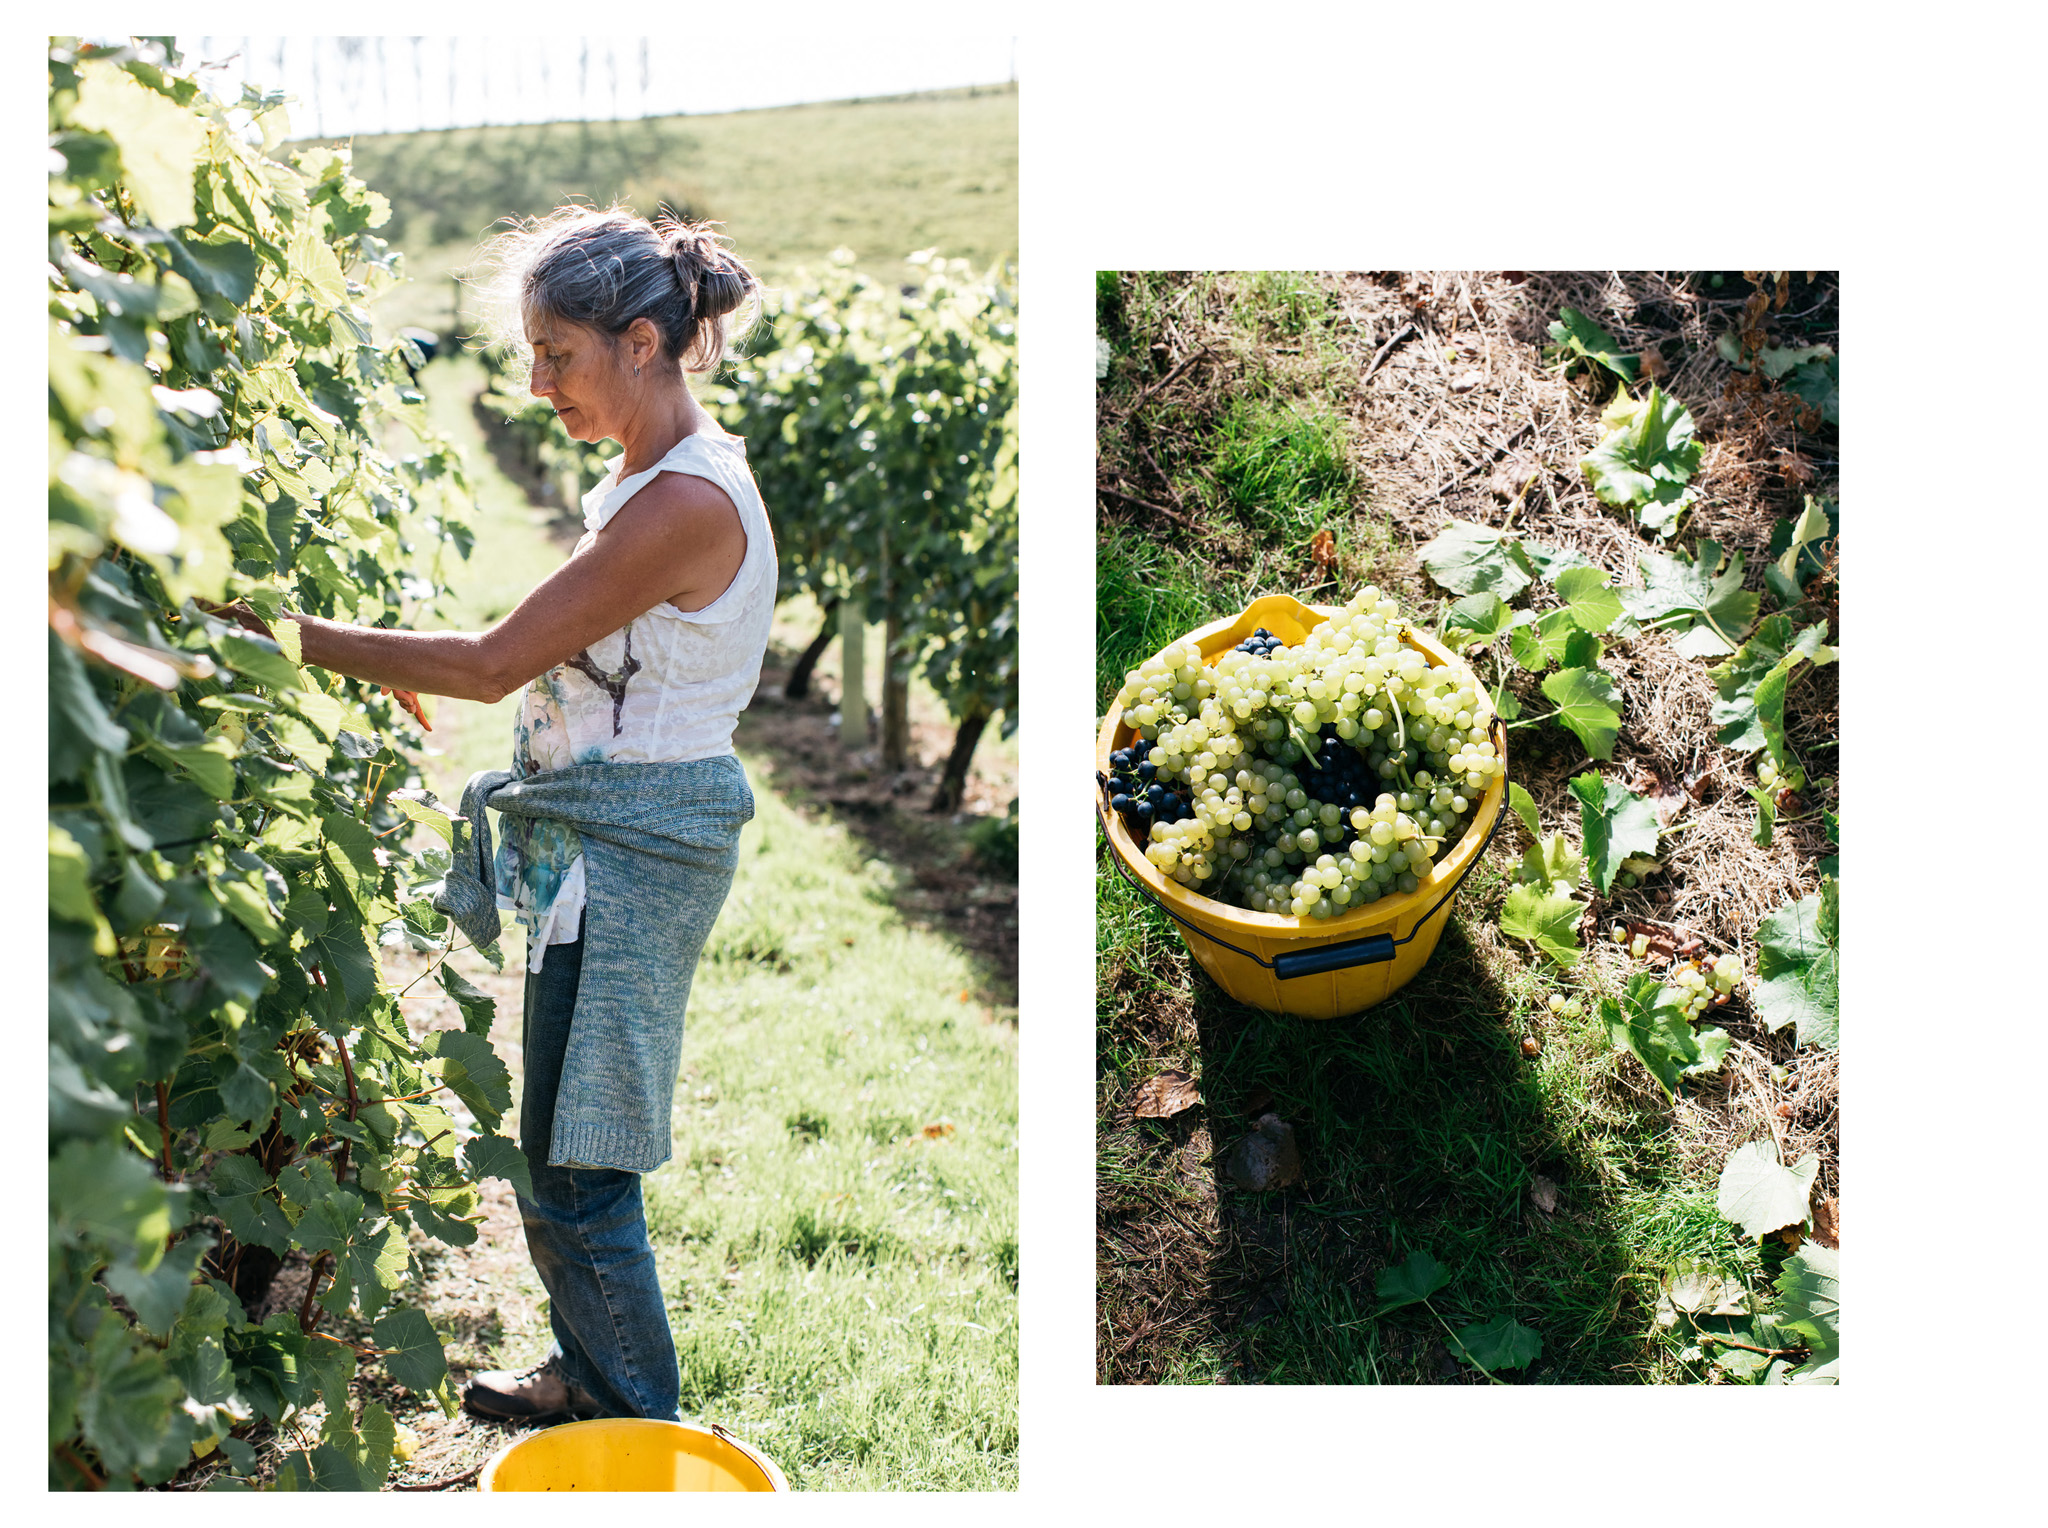 English wine pioneers Breaky Bottom near Lewes in East Sussex held their annual wine harvest with traditional lunch last month.